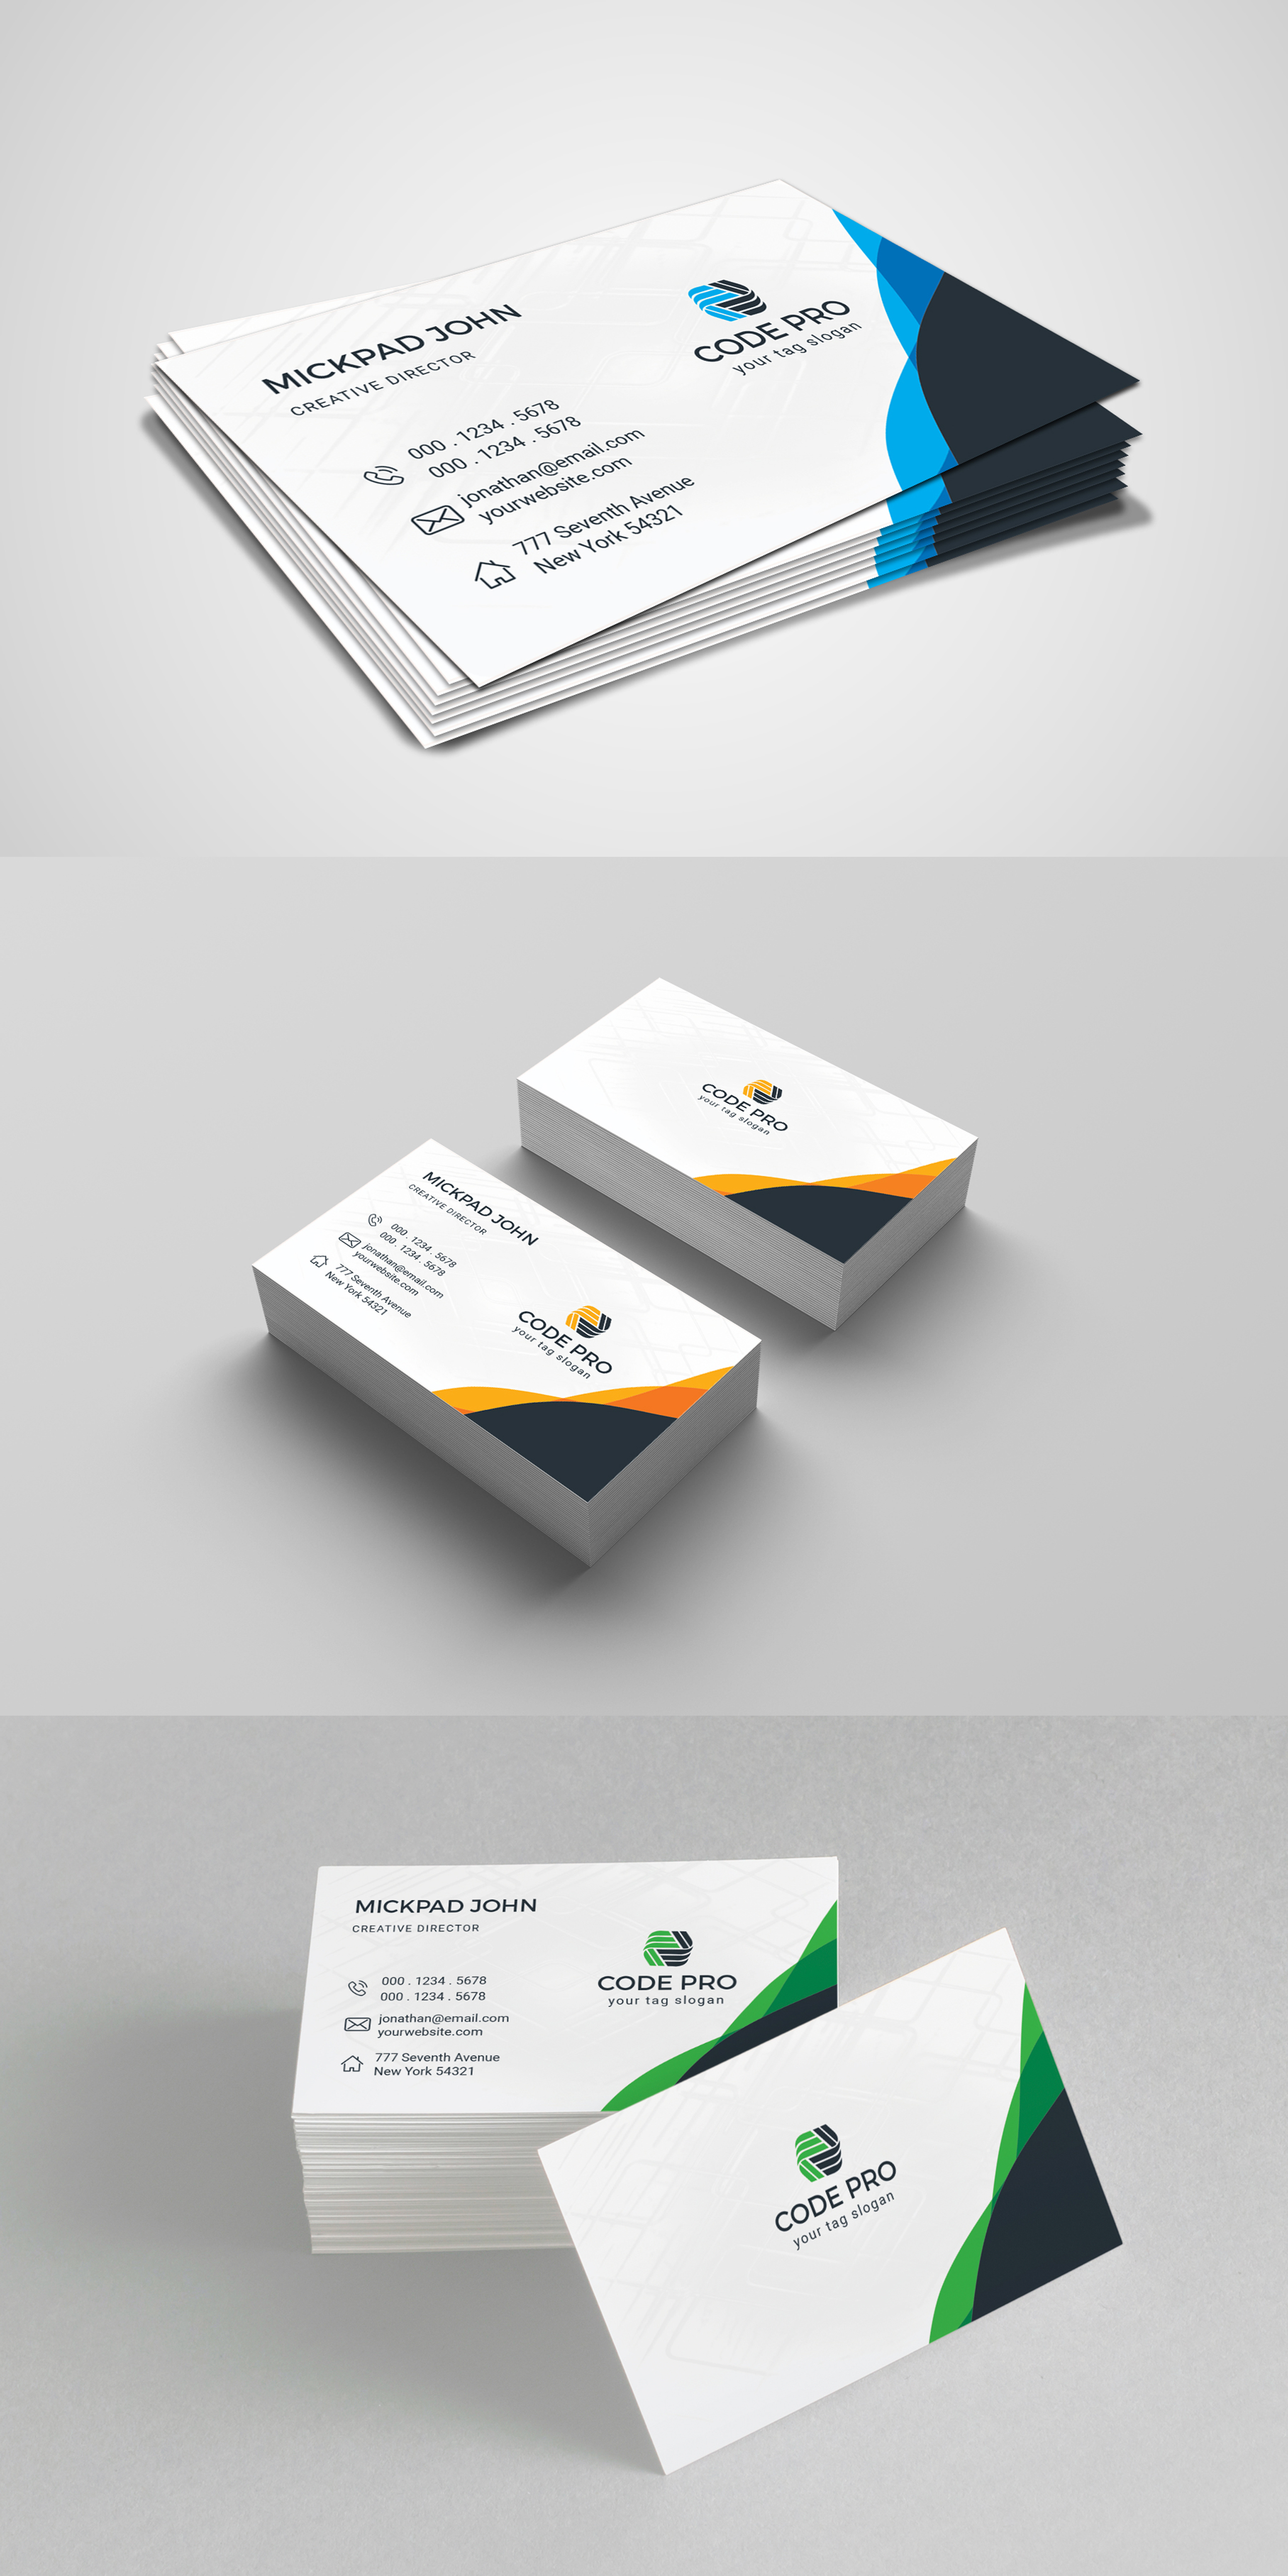 Code Pro Business Card vol. 1 Corporate Identity